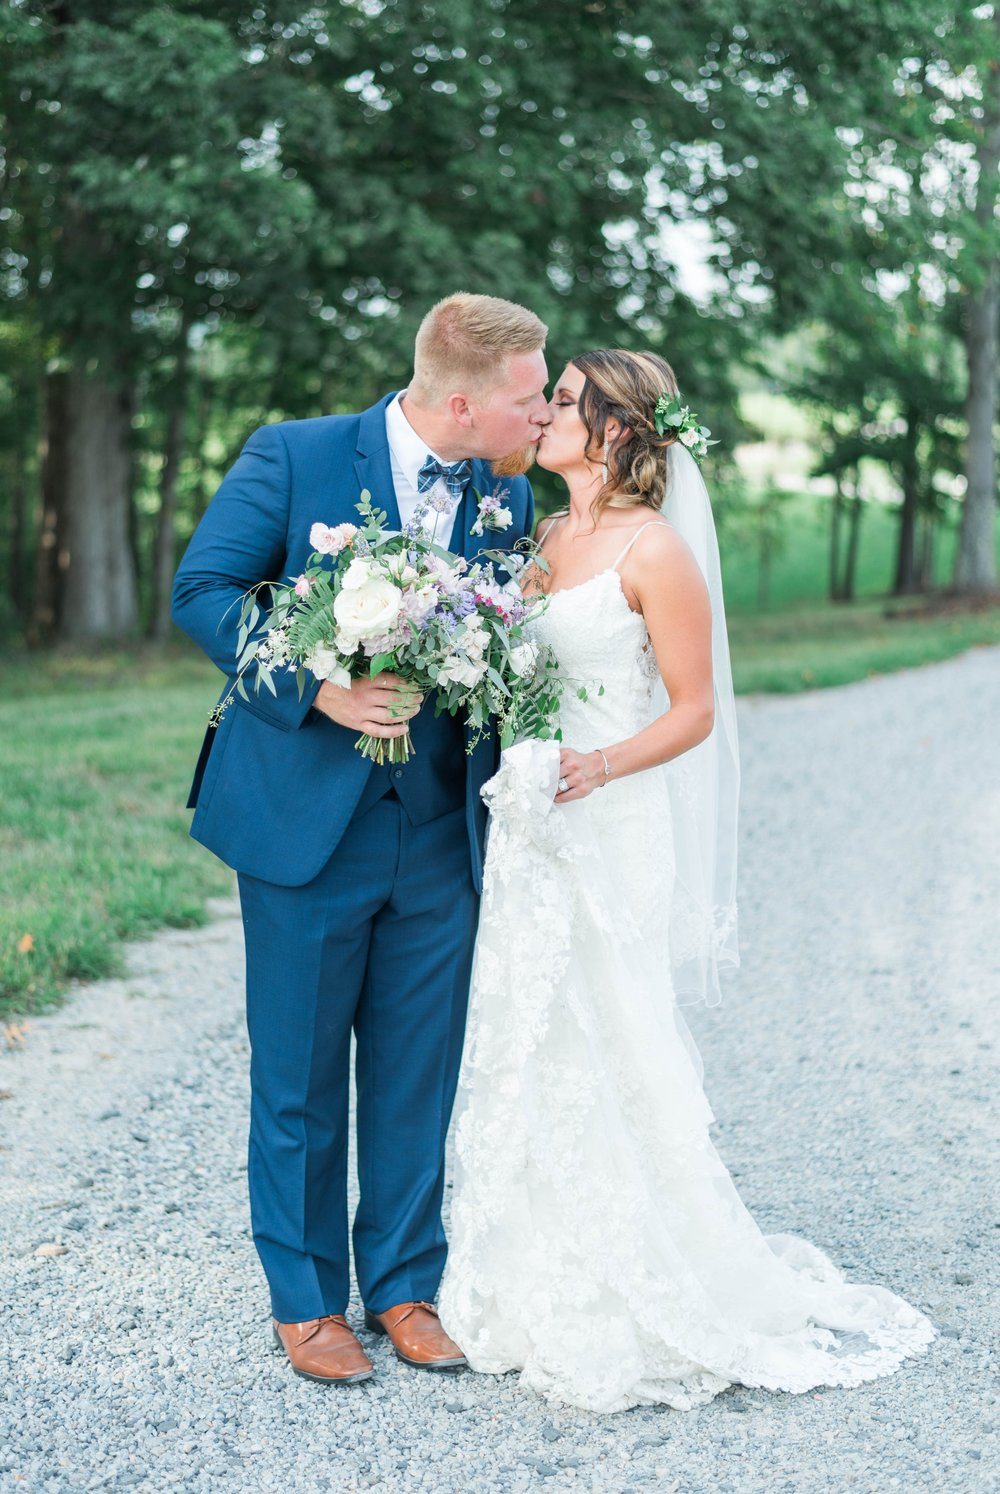 atkinson farms_VirginiaWeddingPhotographer_LynchburgWeddingPhotographer_DylanandLauren 30.jpg